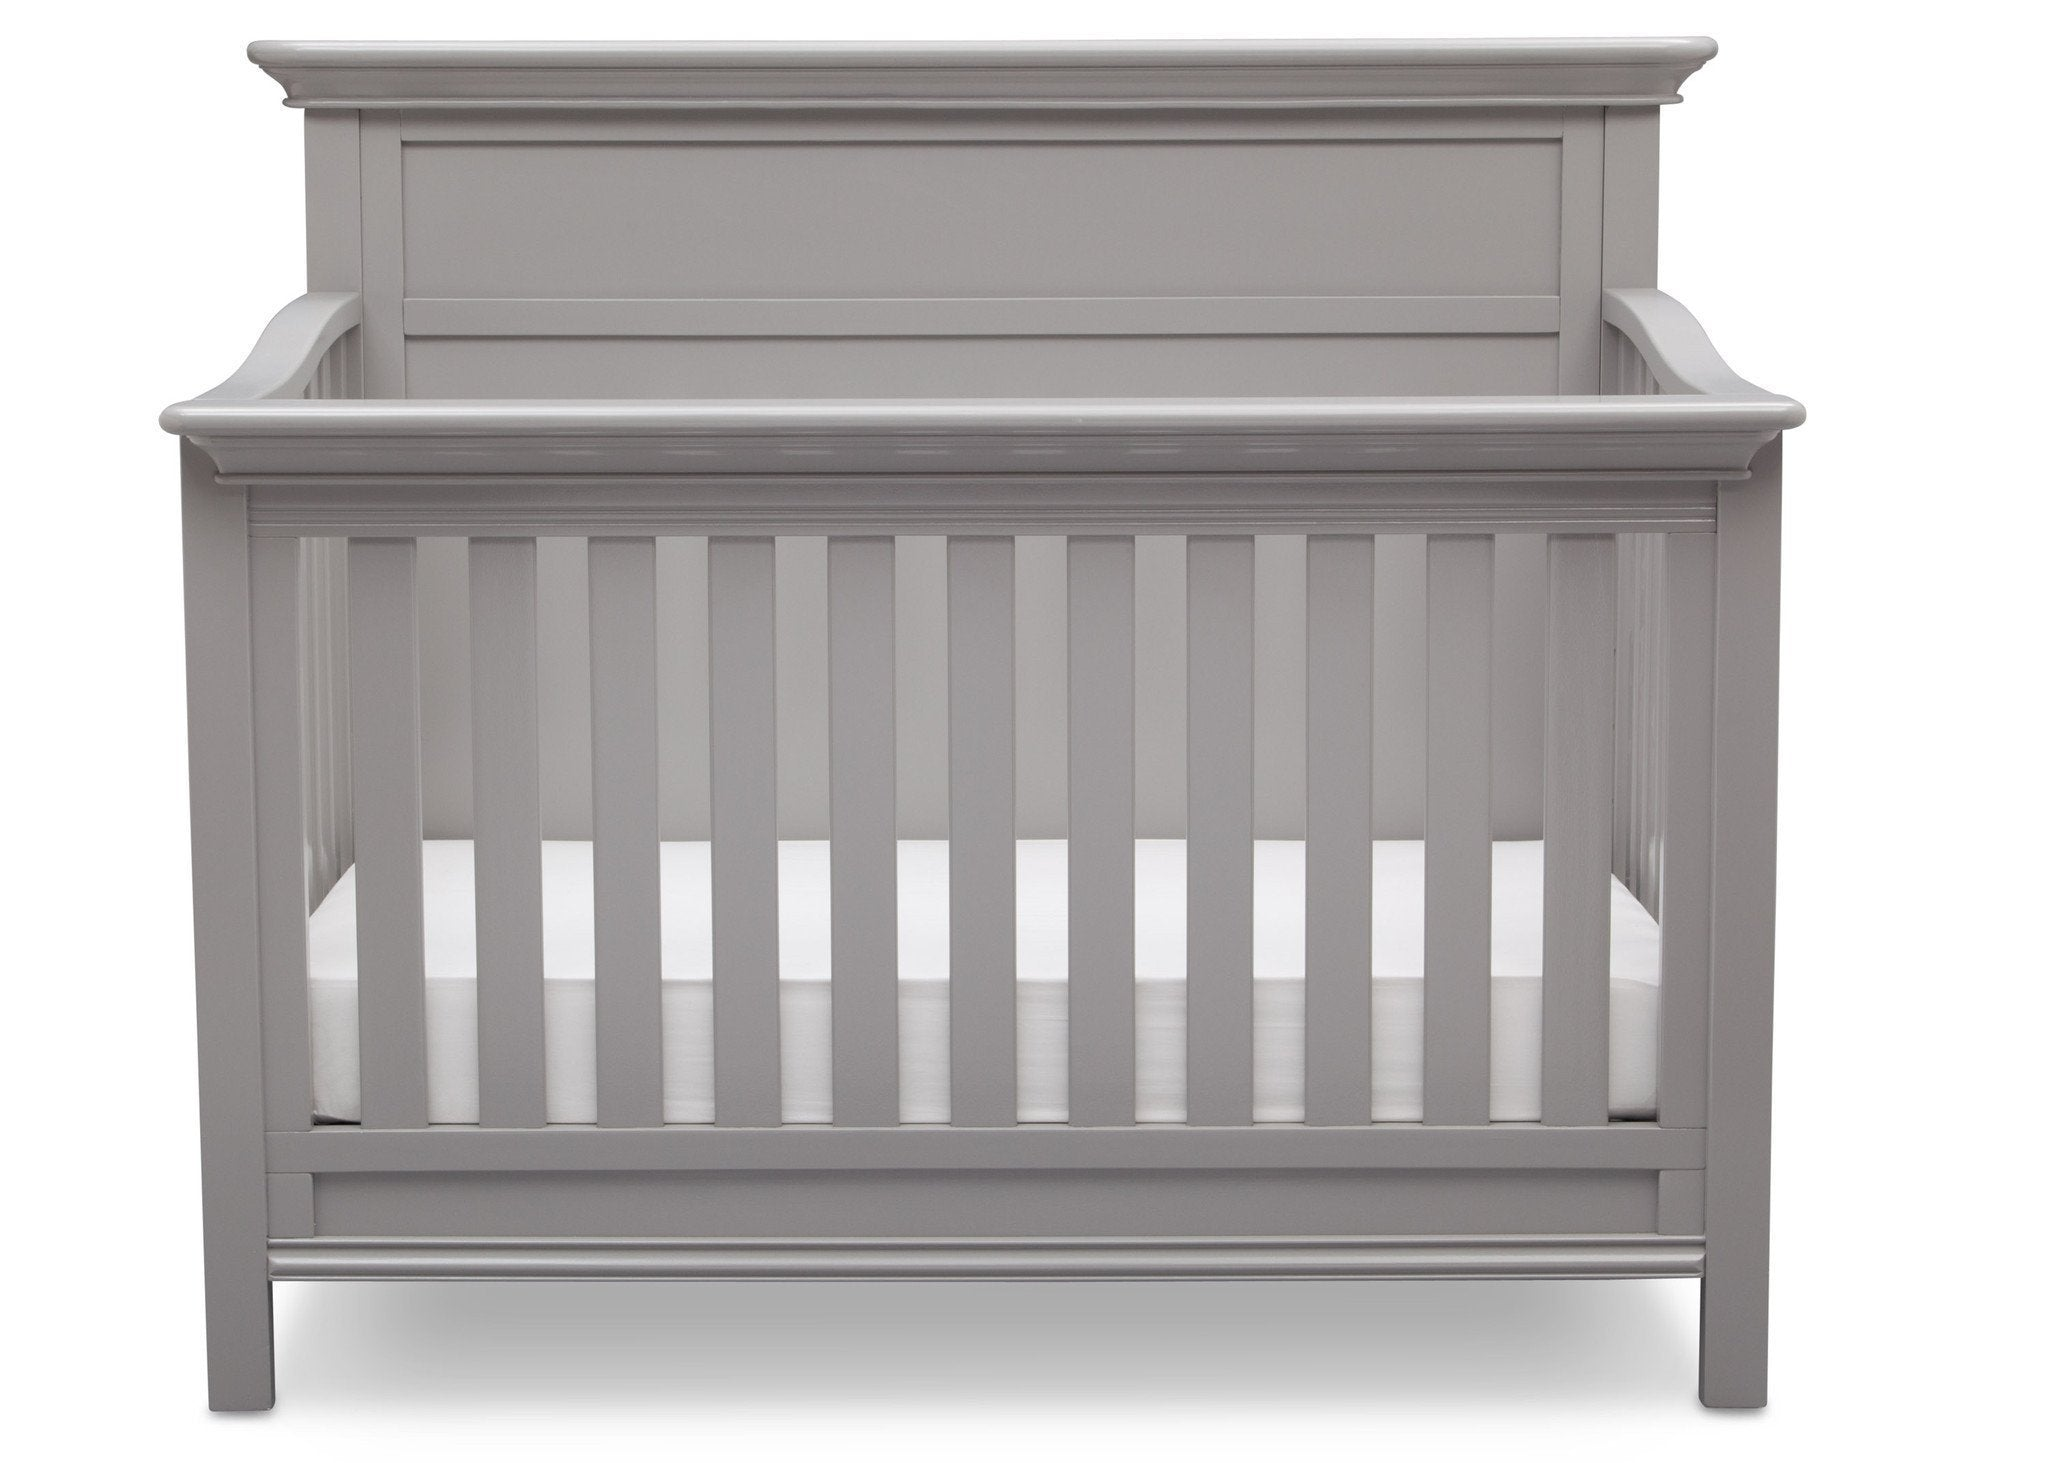 Serta Grey (026) Fairmount 4-in-1 Crib, Front View with Crib Conversion b3b